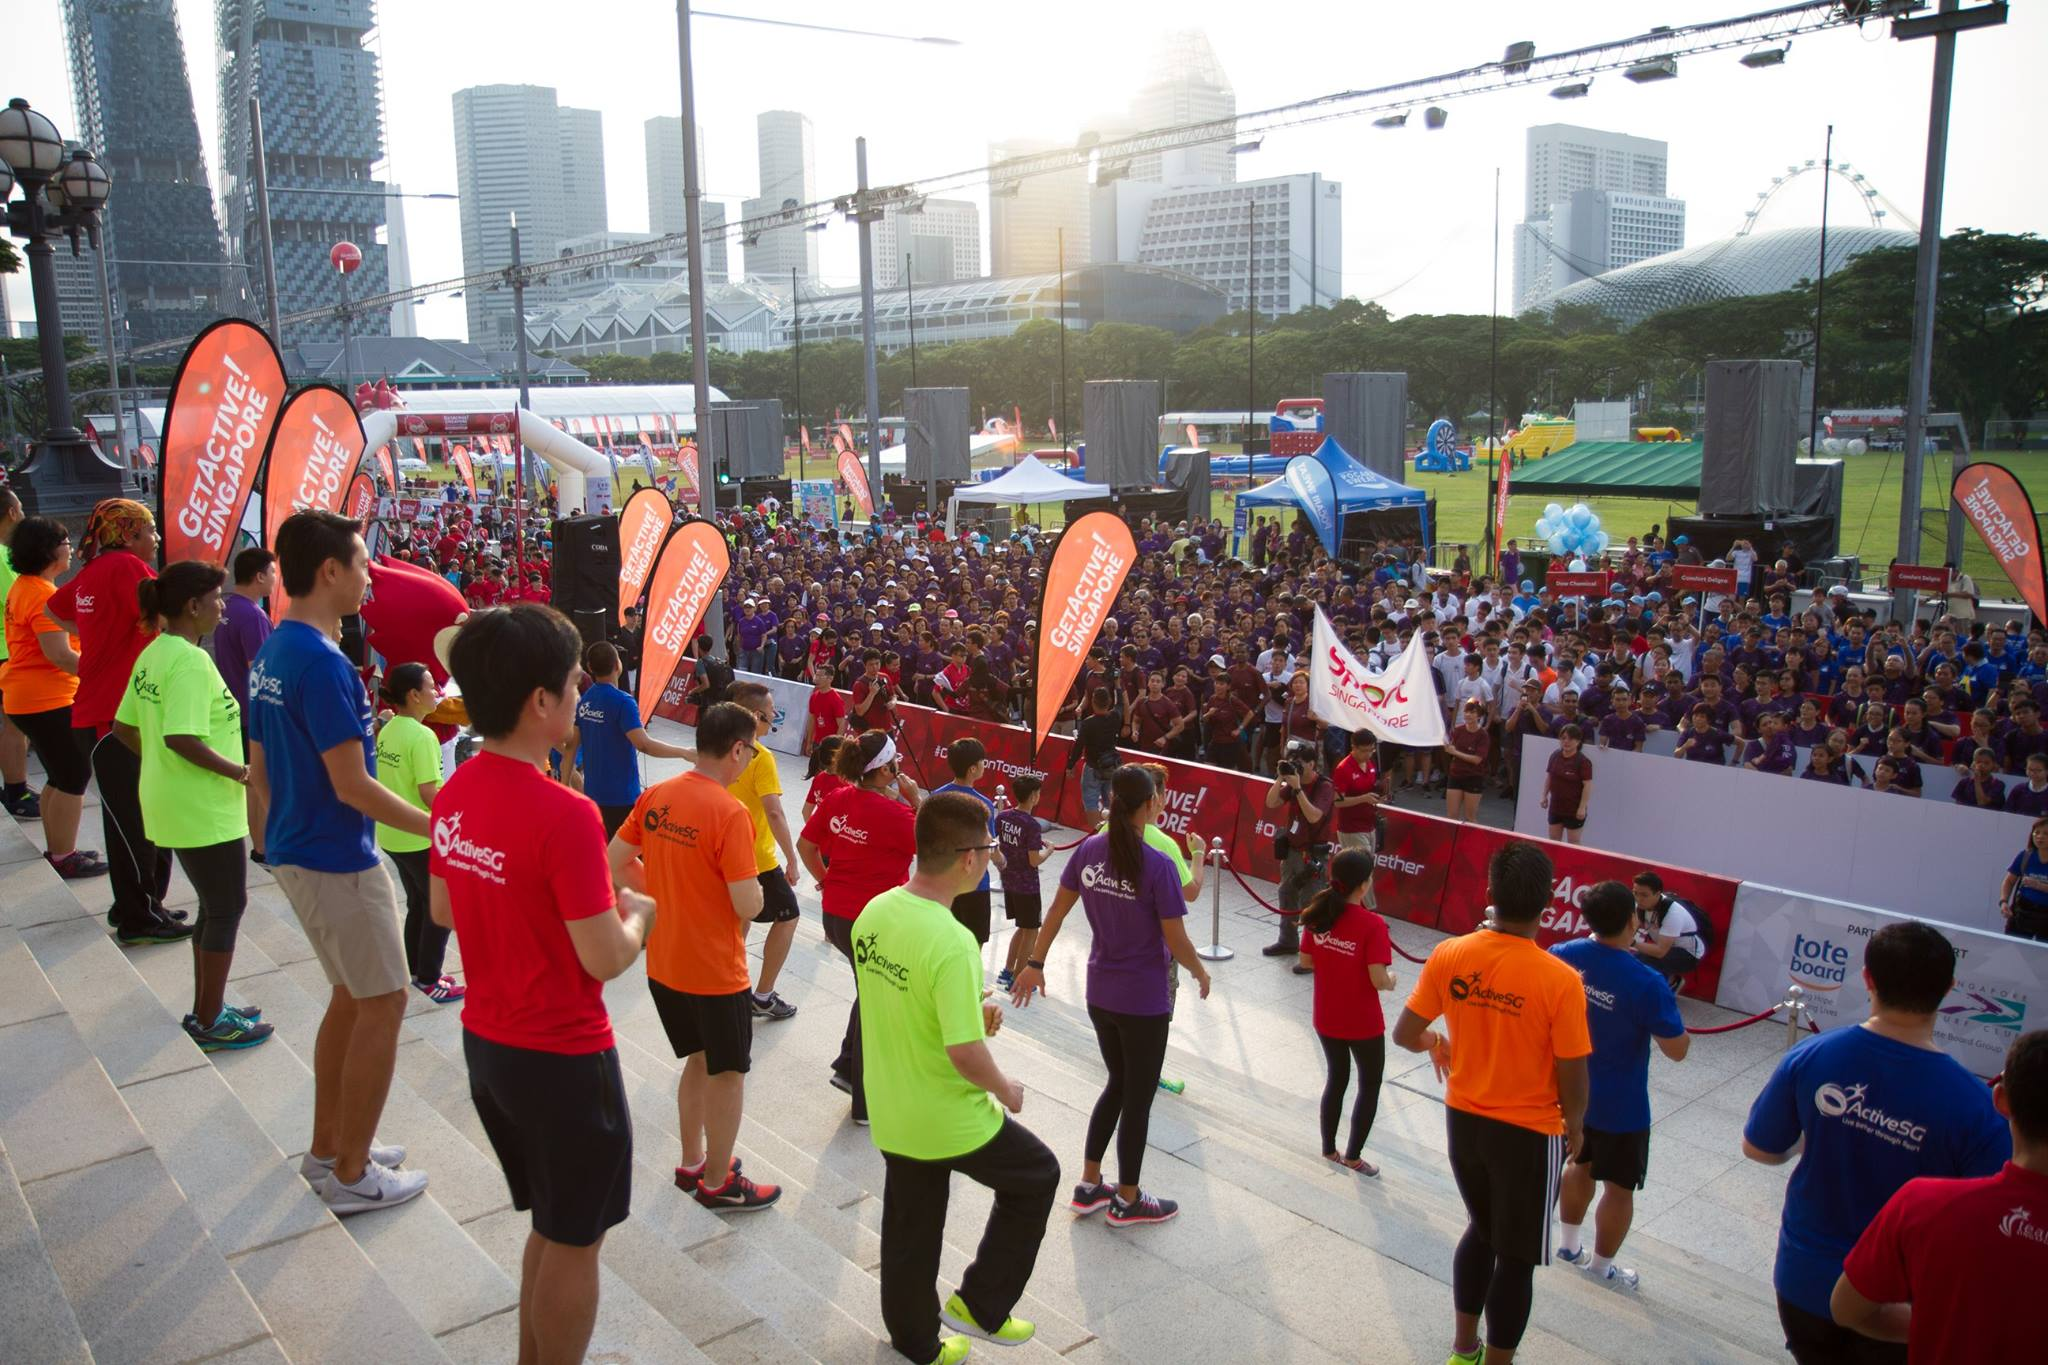 GetActive! Singapore Launch at The Padang on July 30, 2017. Photo courtesy: Dyan Tjhia, Sport Singapore